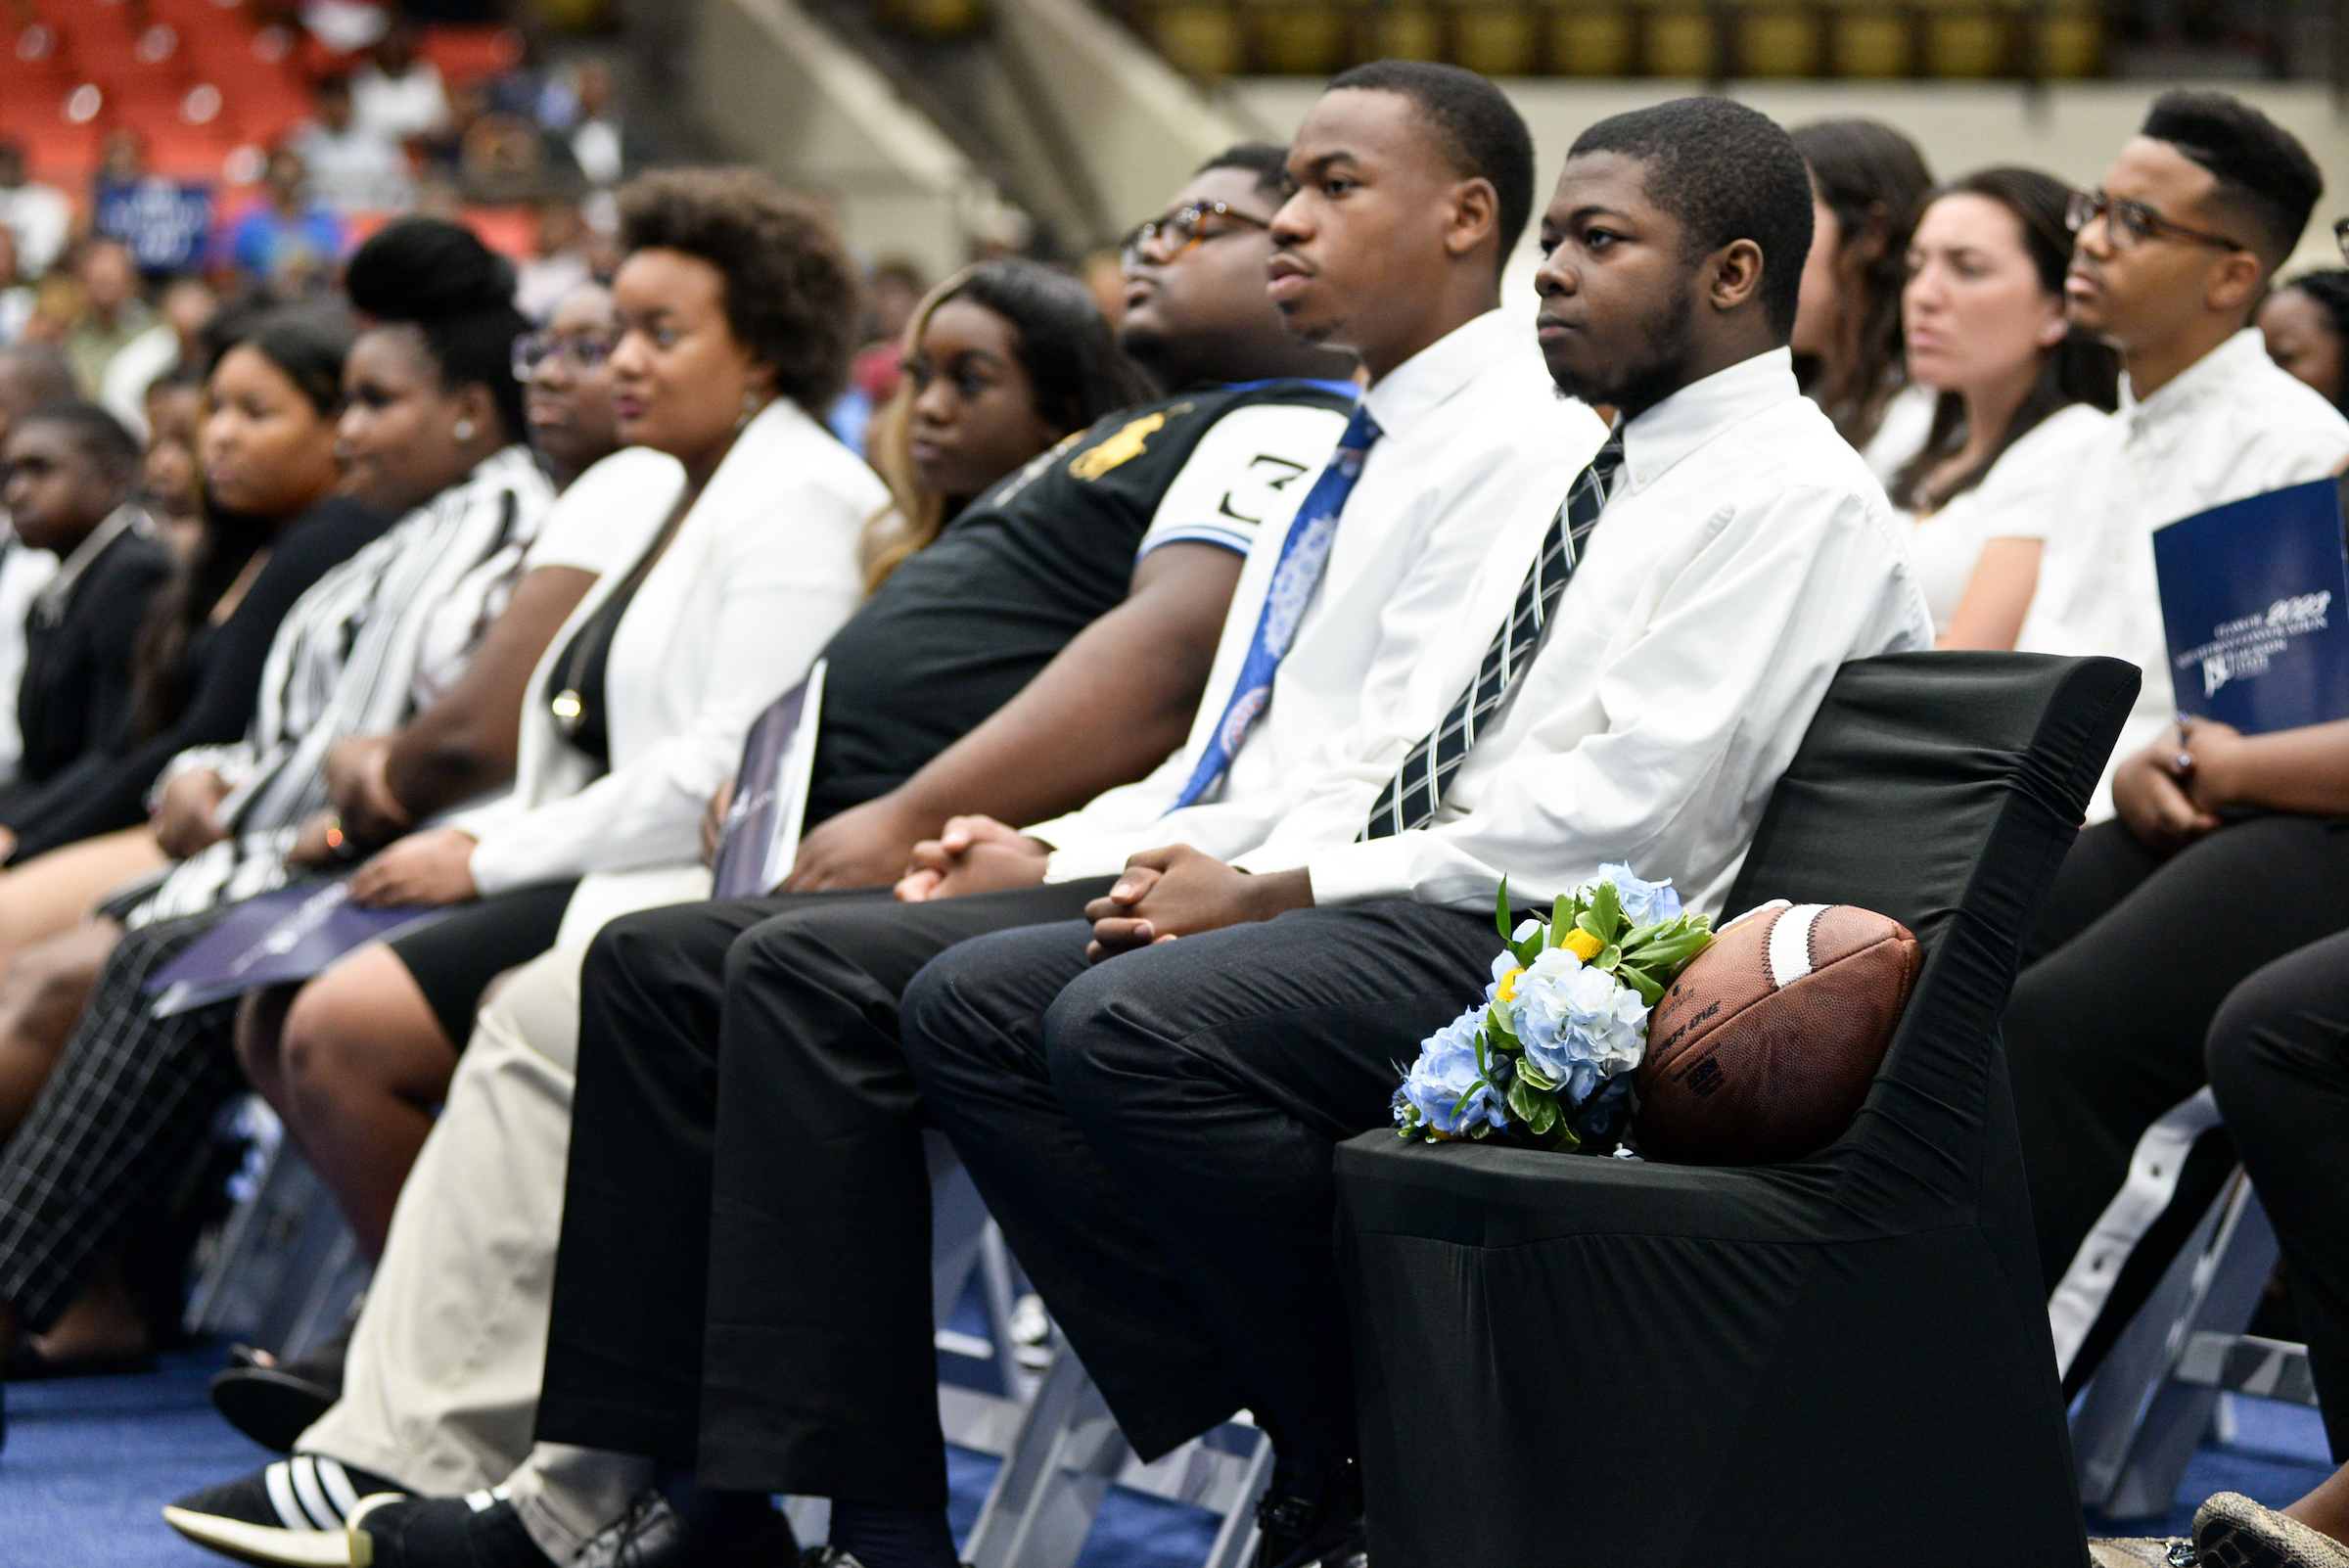 With a football placed on an empty chair, a moment of silence is observed during New Student Convocation as students pay respect to incoming JSU football player Leroy Hawkins, 17, who died tragically in early June in Dallas. He was a Top 300 offensive lineman and, reportedly, was 34th in Texas. (Photo by Darek Ashley/Special to JSU)